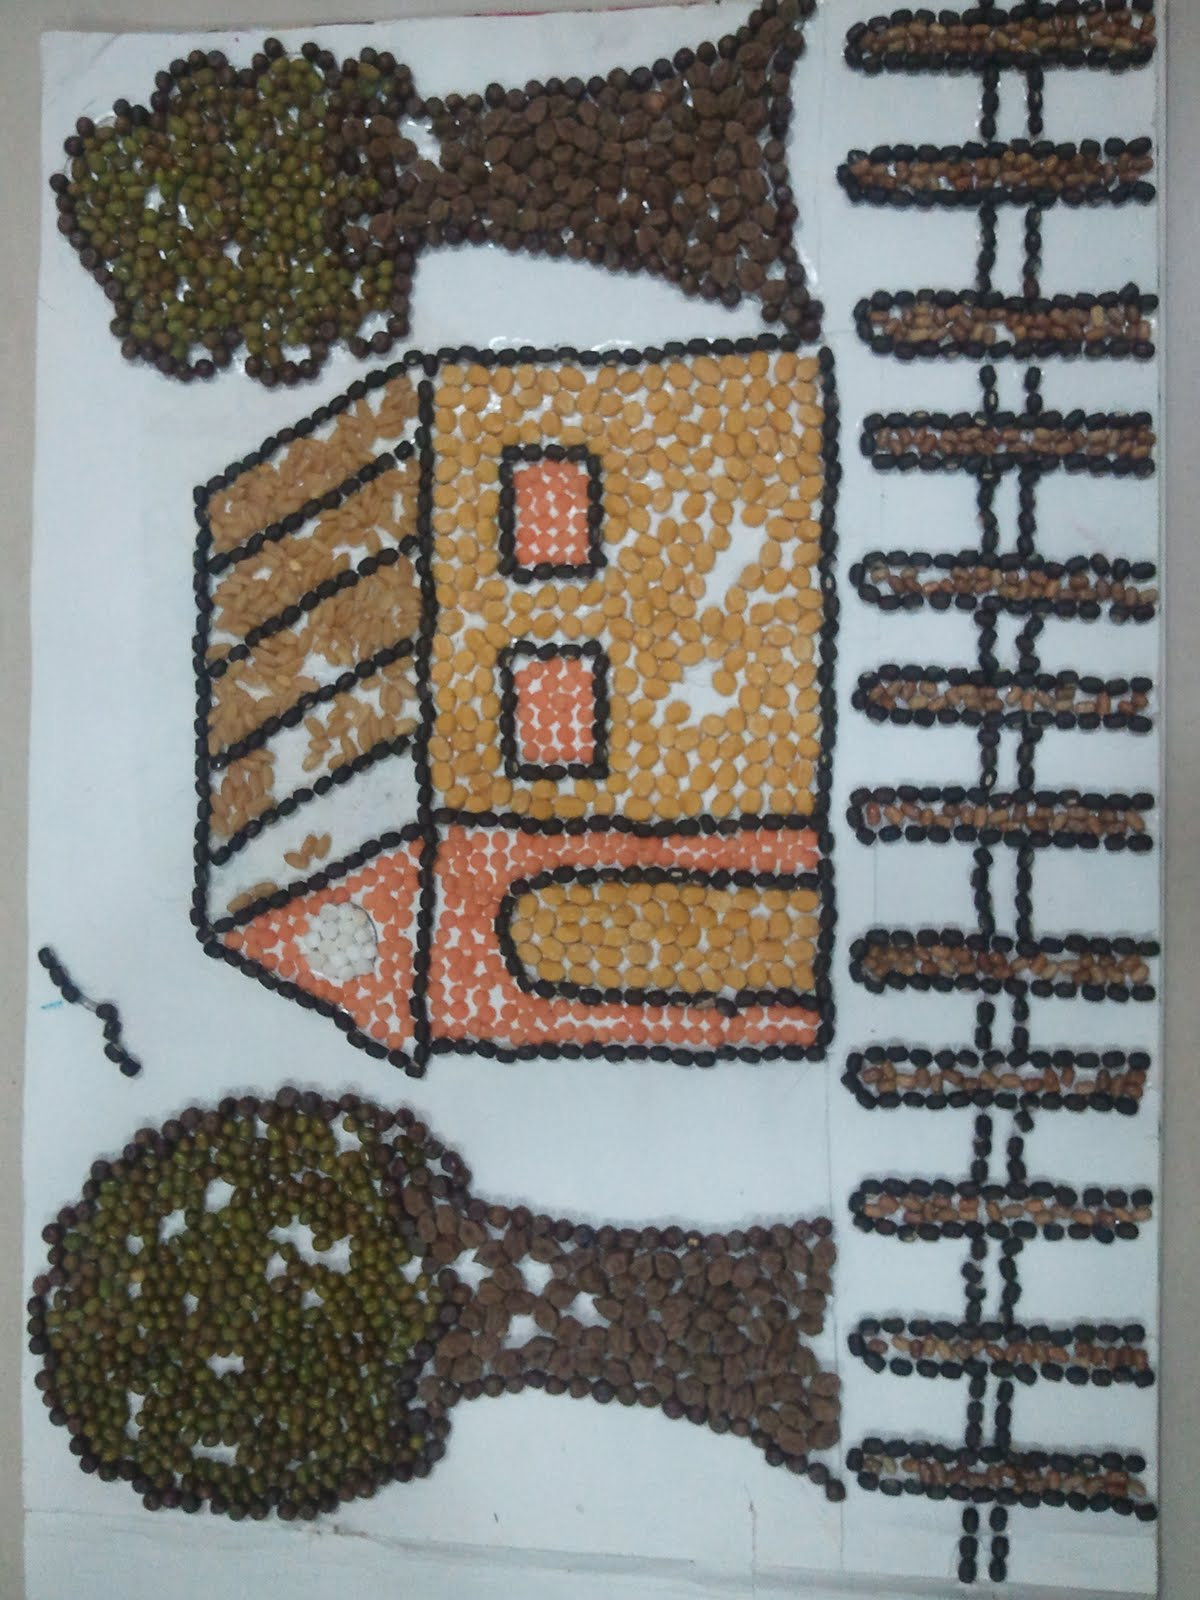 dishi s art and craft art with grains and pulses